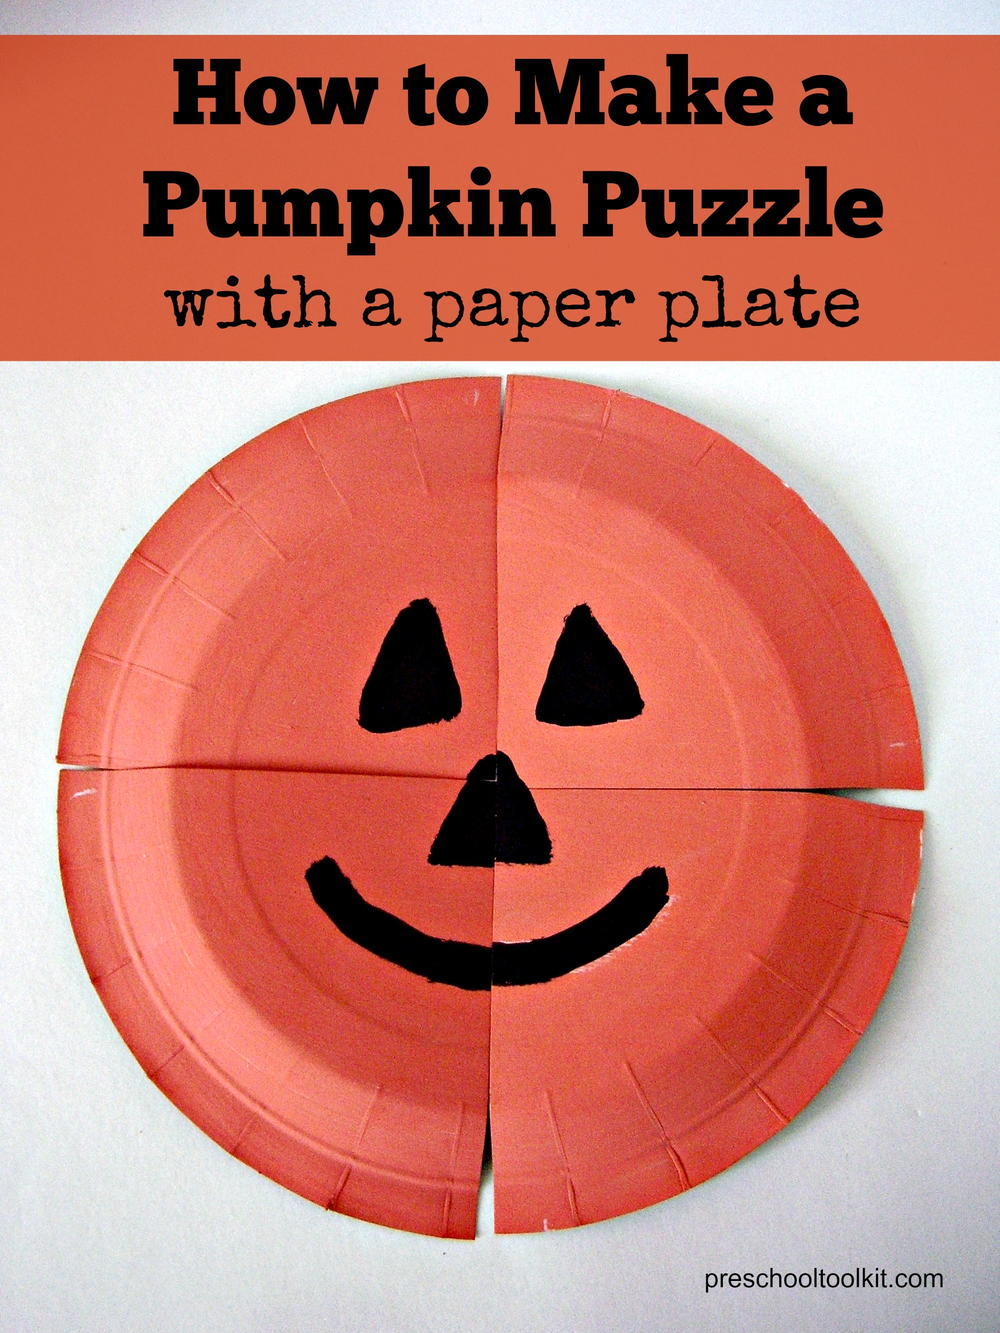 How to Make a Pumpkin Puzzle